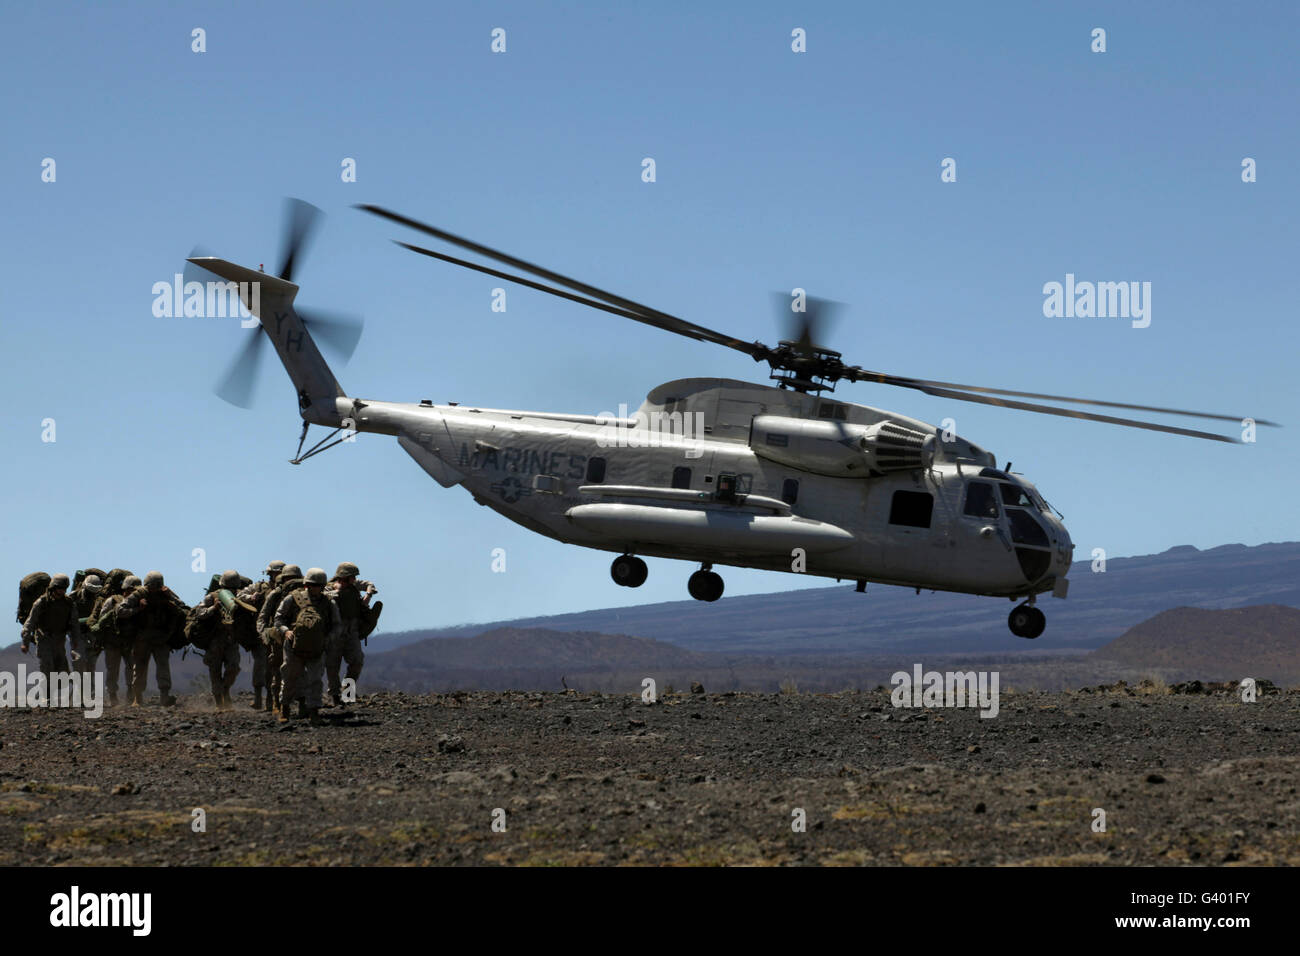 A U.S. Marine Corps CH-53D Seahawk helicopter. Stock Photo